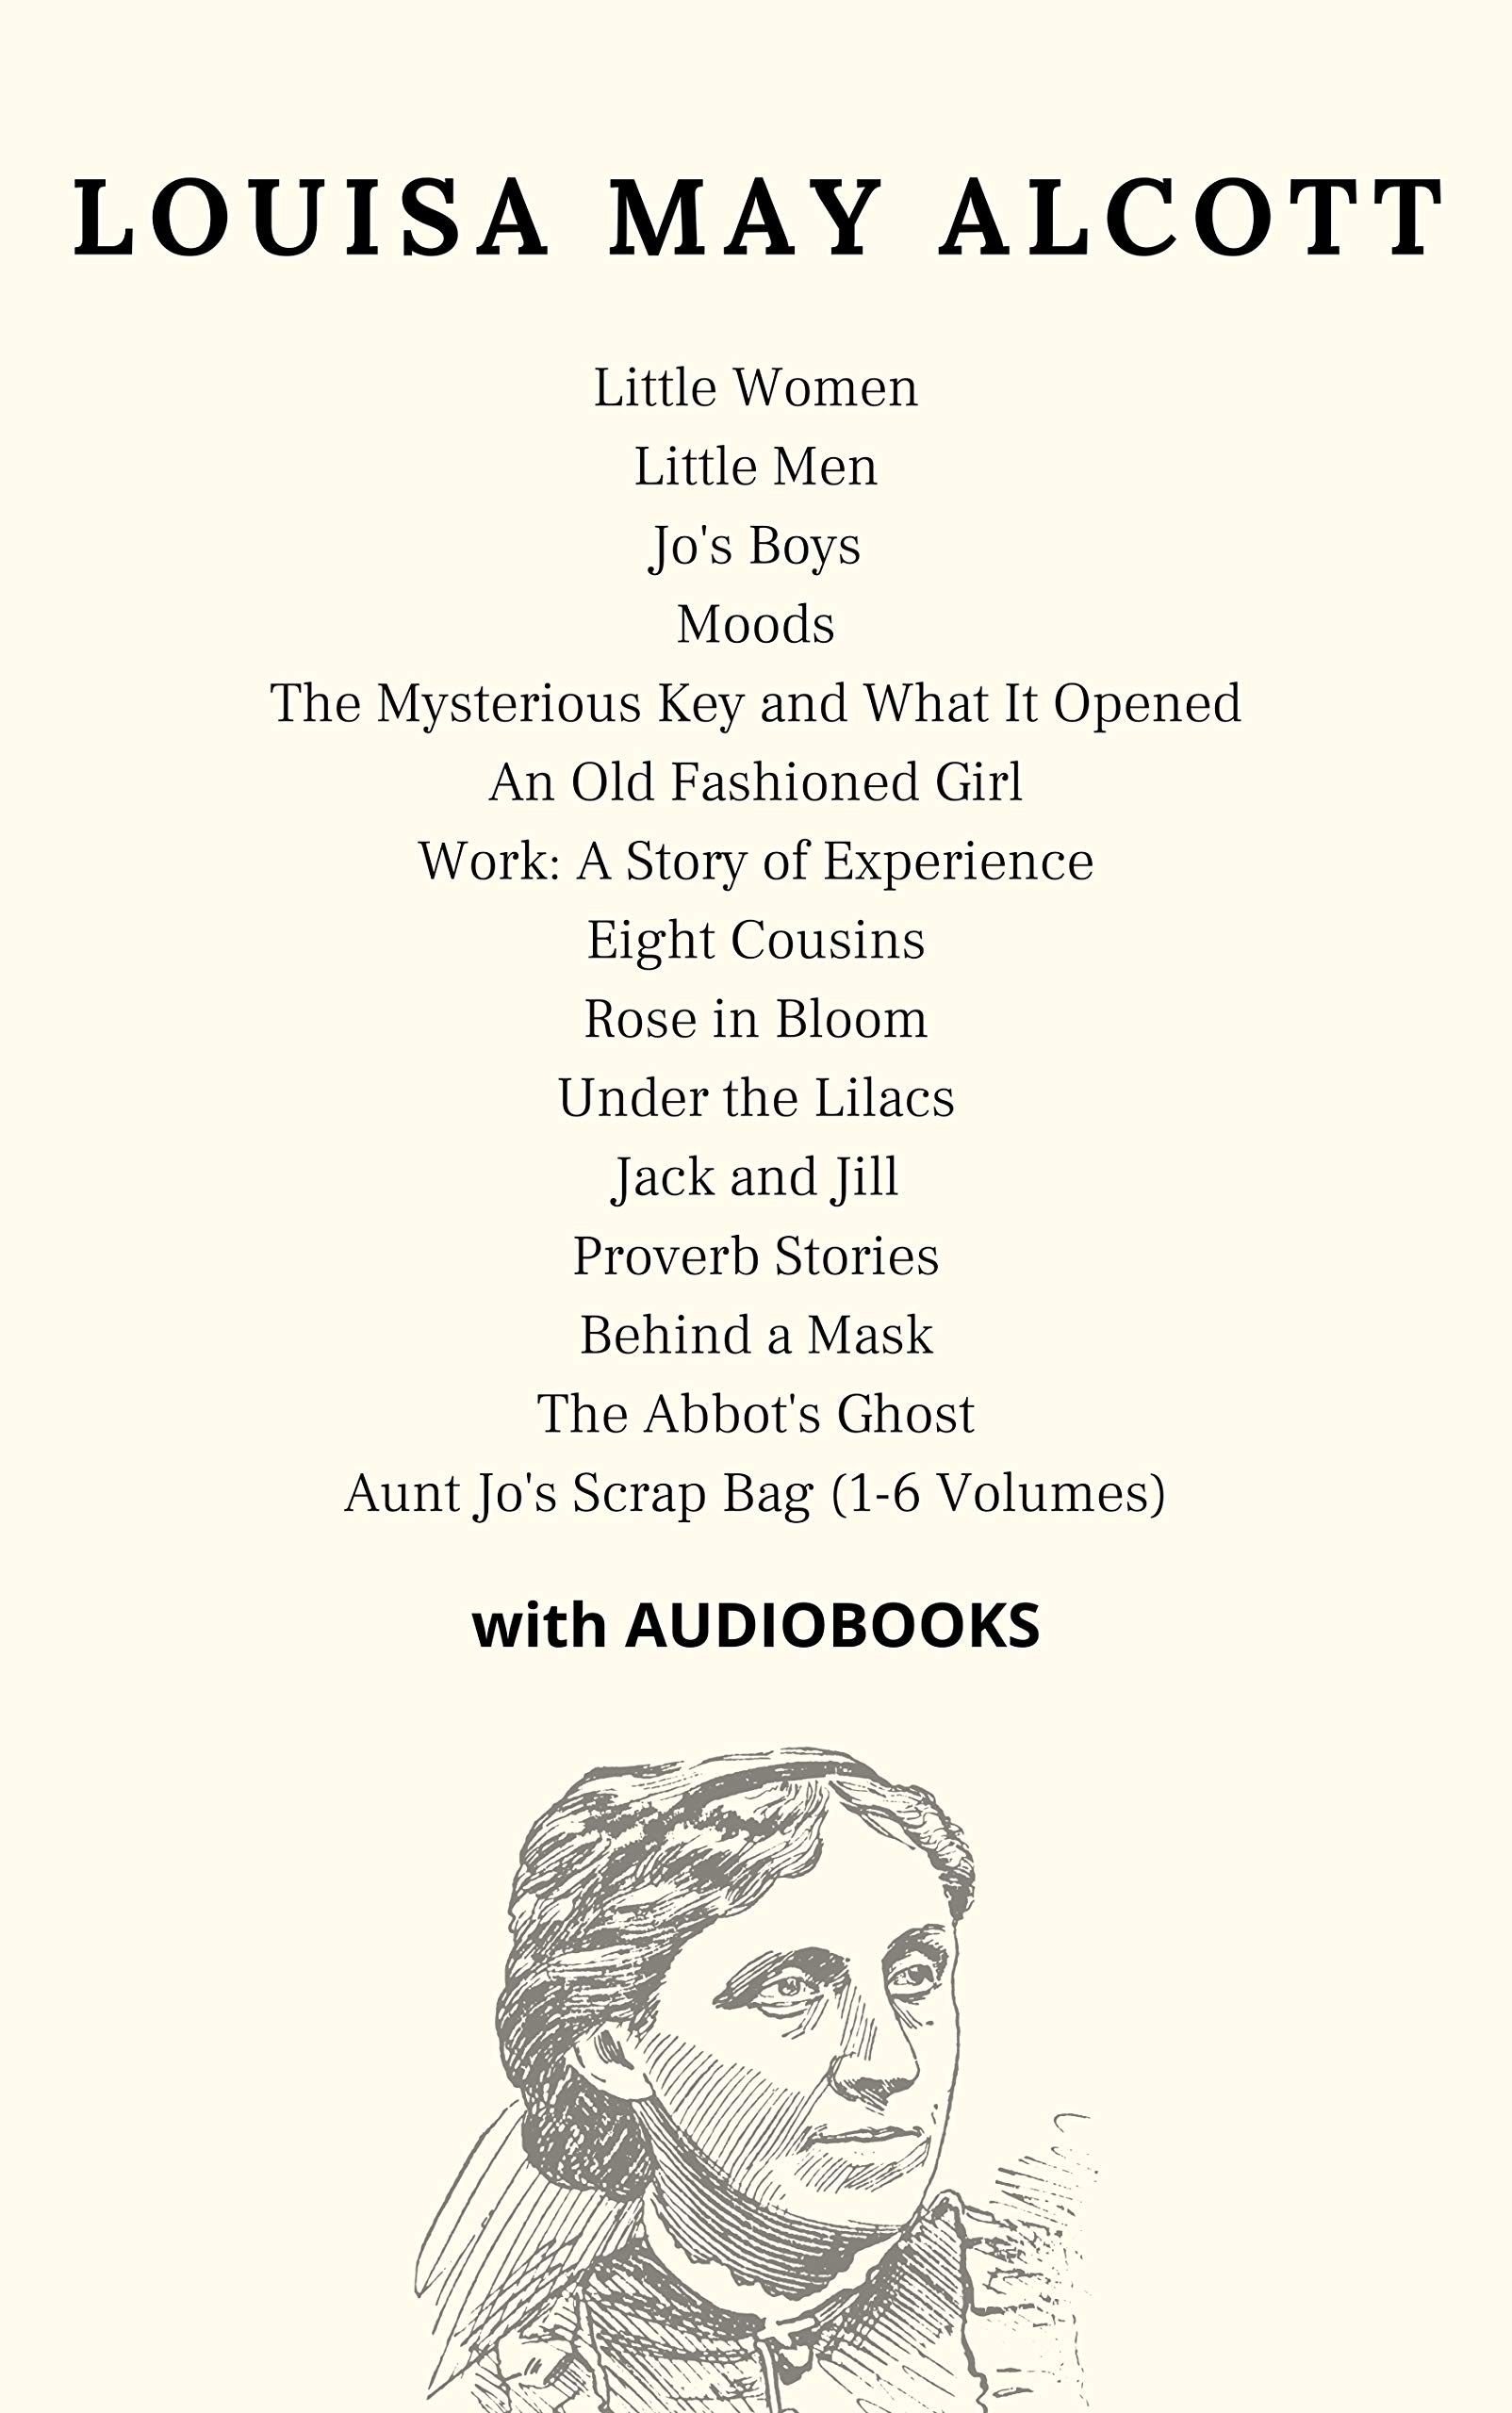 Louisa May Alcott: (20 books) Little Women, Little Men, Jo's Boys, Moods, An Old Fashioned Girl, Eight Cousins, Rose in Bloom... - WITH AUDIOBOOKS